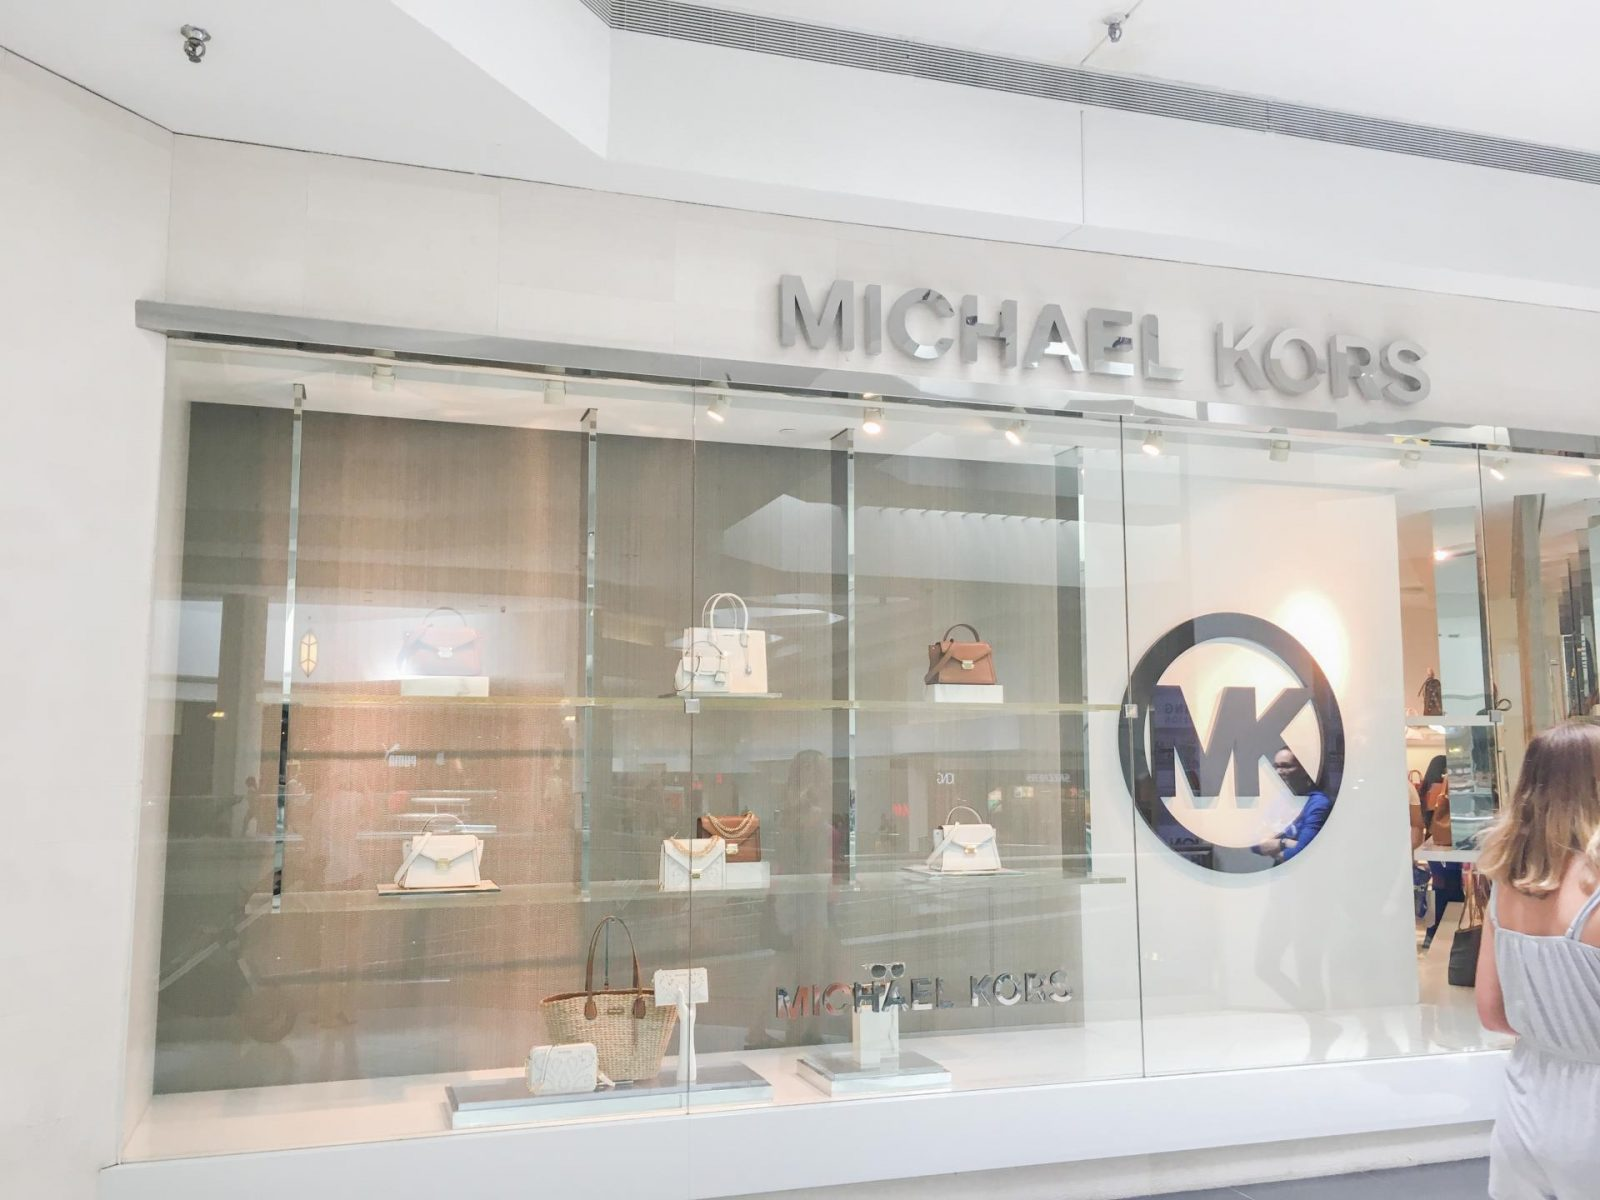 Michael Kors at Woodfield Mall in Schaumburg, Illinois. Michael Kors at Woodfield Mall in Schaumburg, Illinois! The Best Woodfield Mall Stores in Schaumburg Illinois. Woodfield Mall is one of the biggest malls in America, let me help you decide where to stop first!